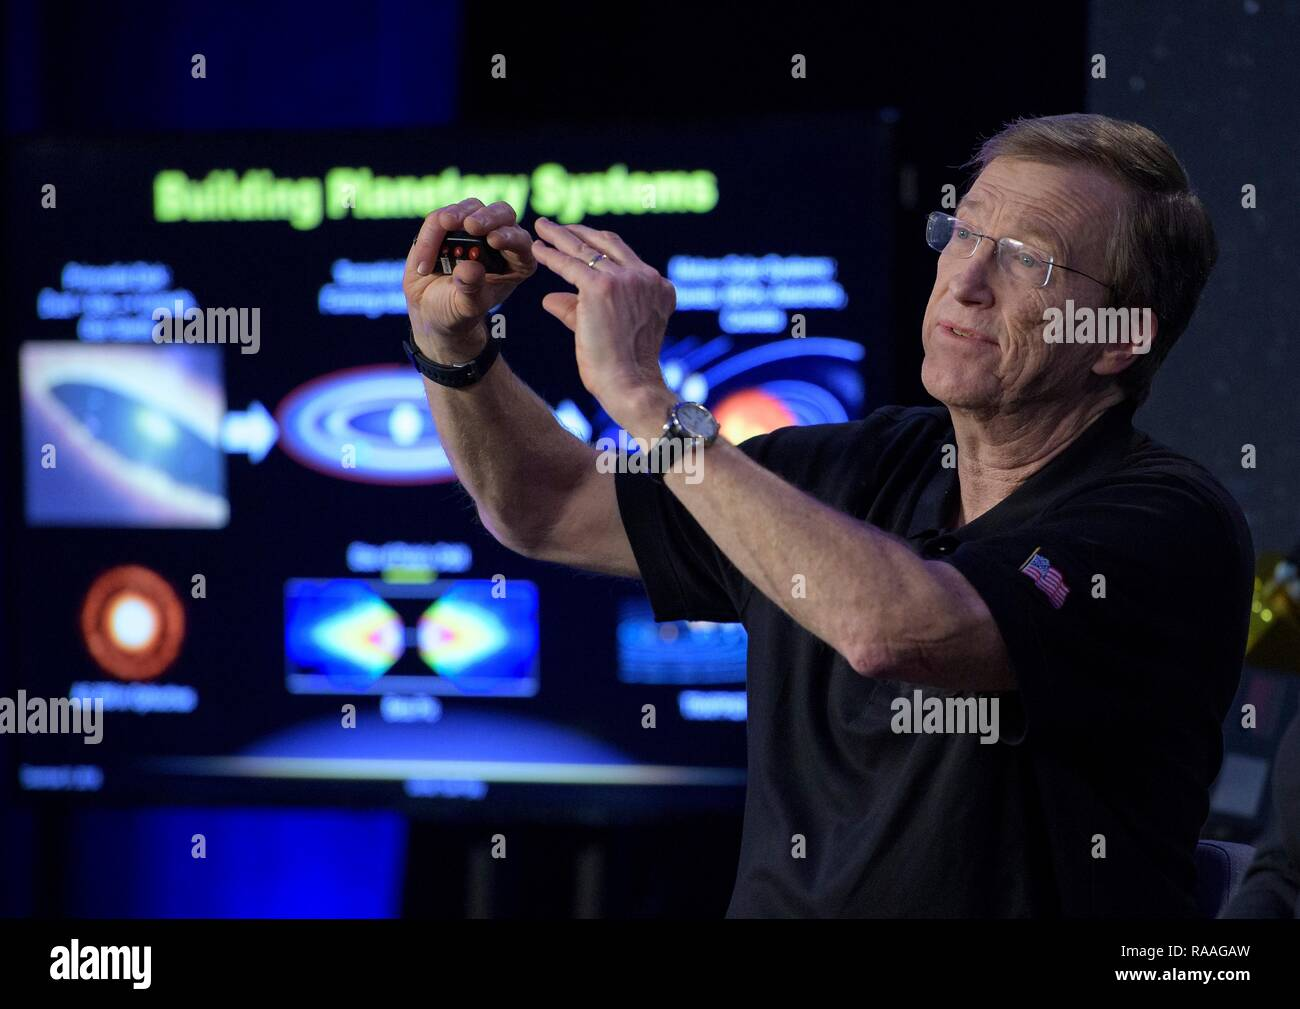 New Horizons project scientist Hal Weaver of the Johns Hopkins University Applied Physics Laboratory during a briefing prior to the expected flyby of Ultima Thule by the New Horizon spacecraft at Johns Hopkins University Applied Physics Laboratory December 31, 2018 in Laurel, Maryland. The flyby by the space probe occurred 6.5bn km (4bn miles) away, making it the most distant ever exploration of an object in our Solar System. - Stock Image